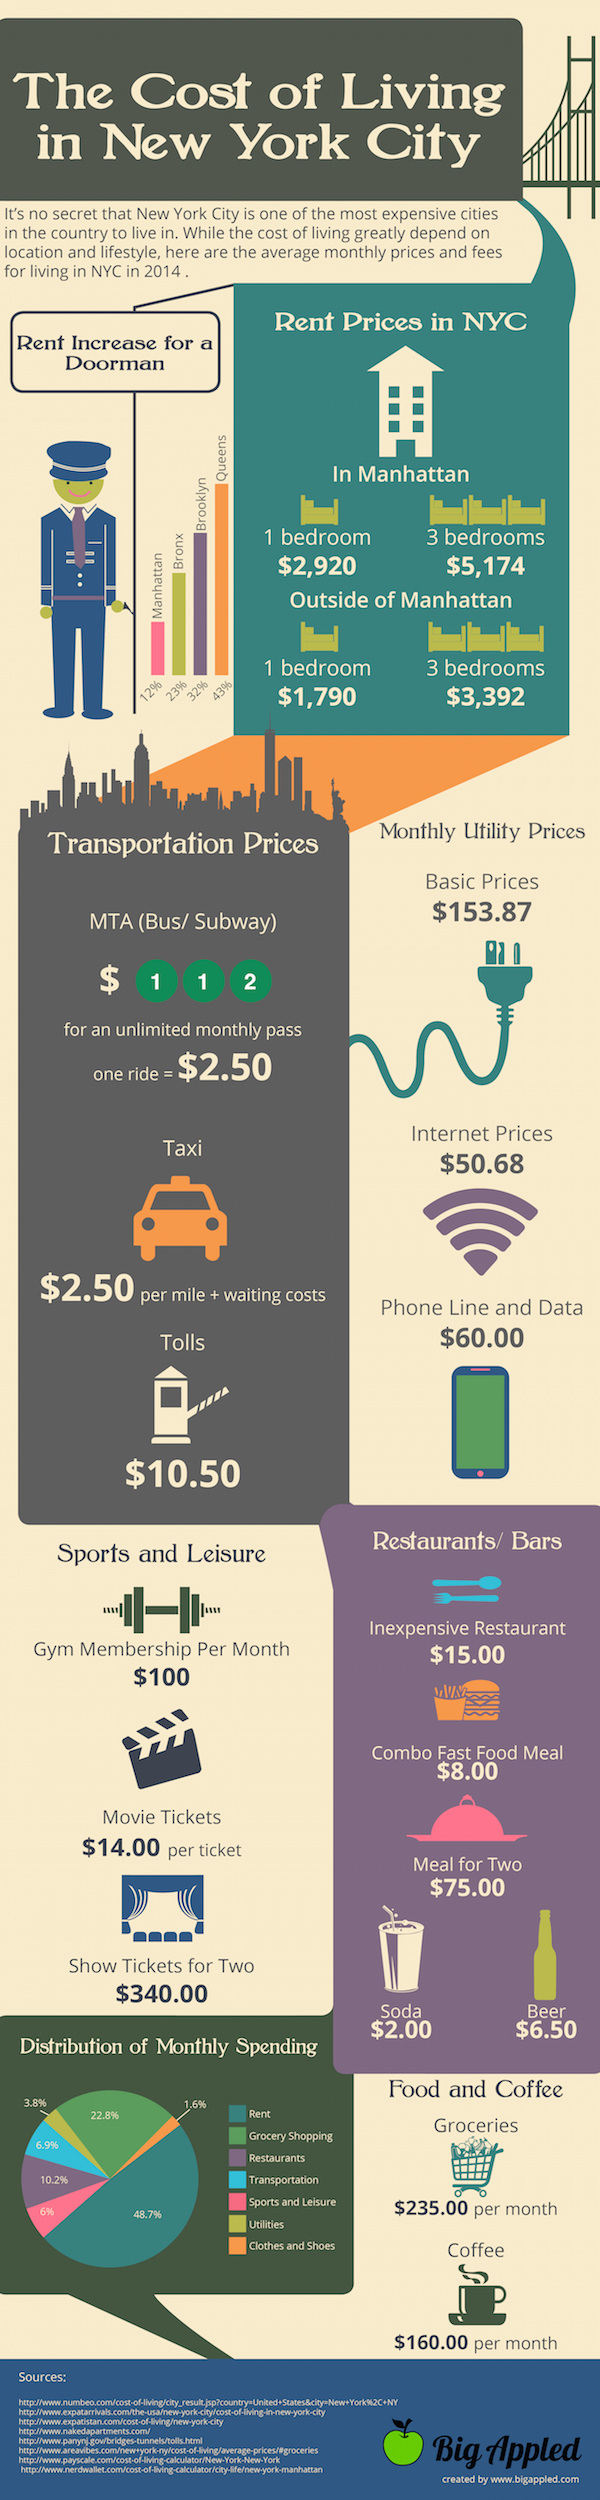 Cost of Living in NYC infographic